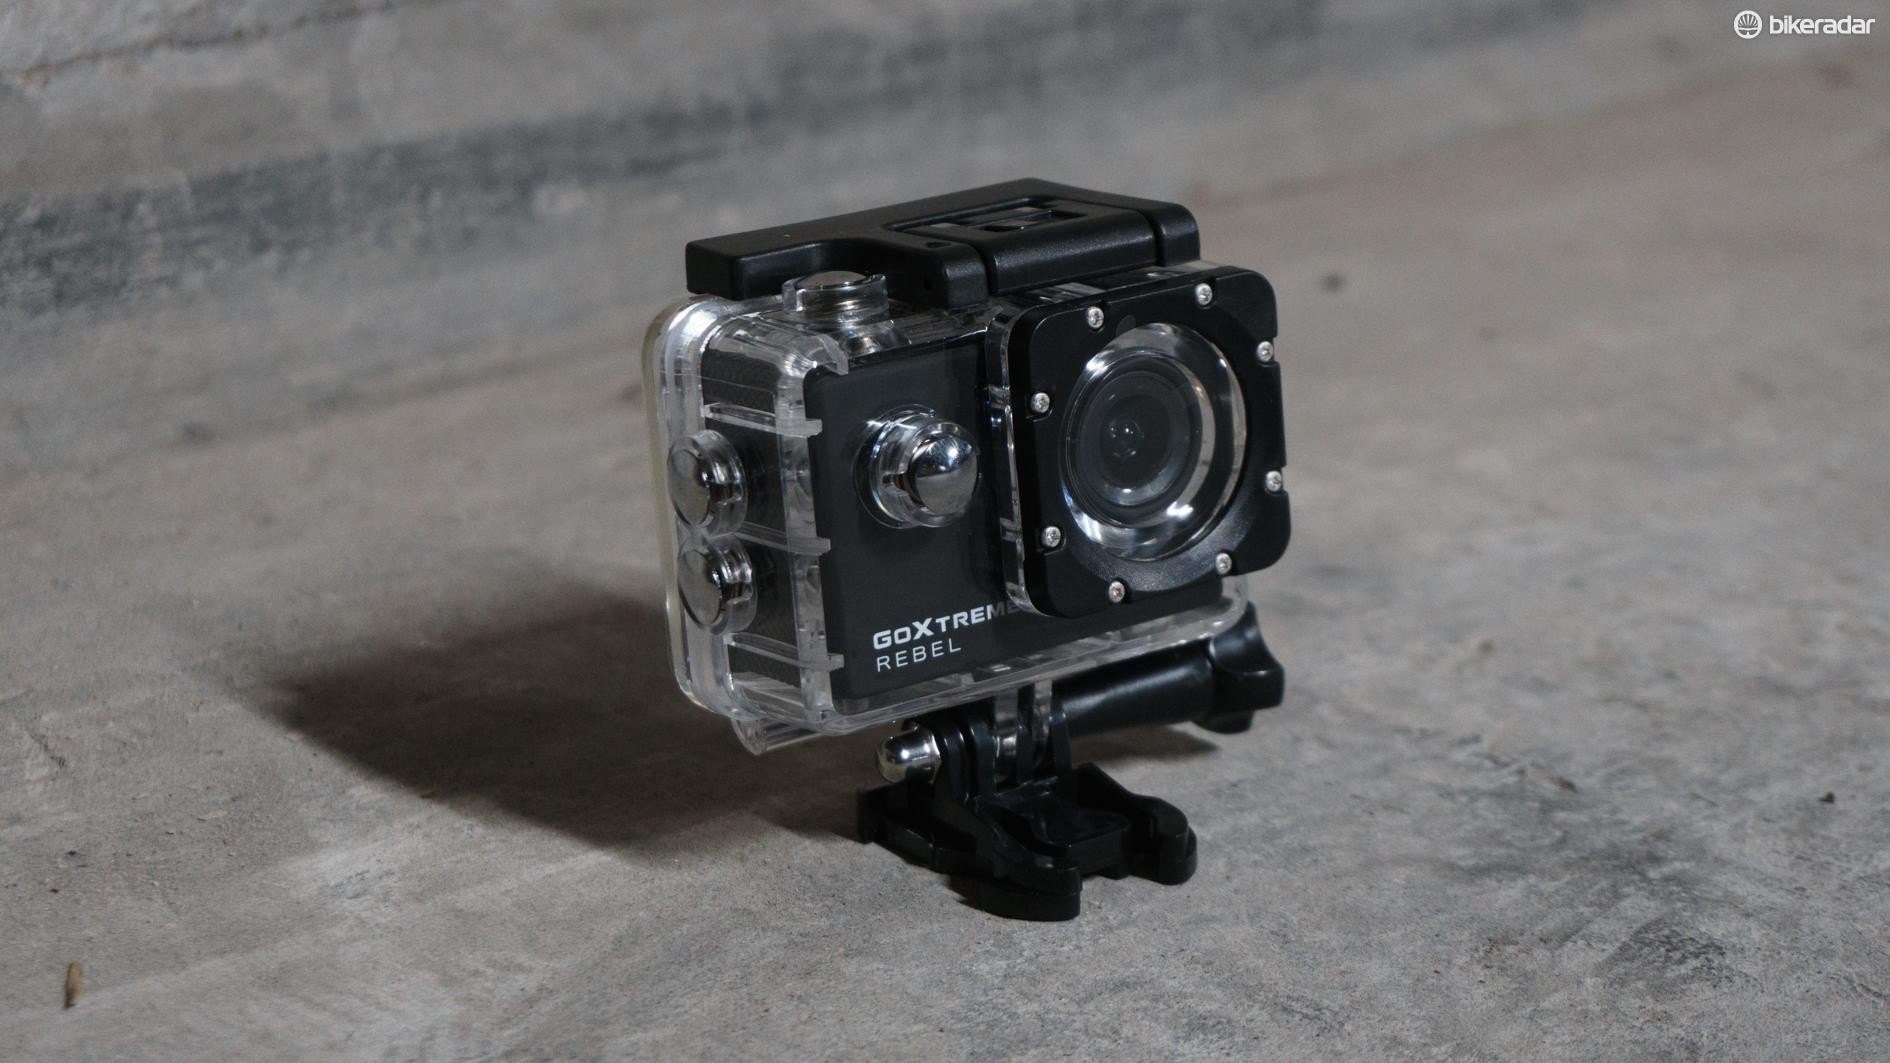 The GoXtreme Rebel is also waterproof up to 30mm, according to the manufacturers